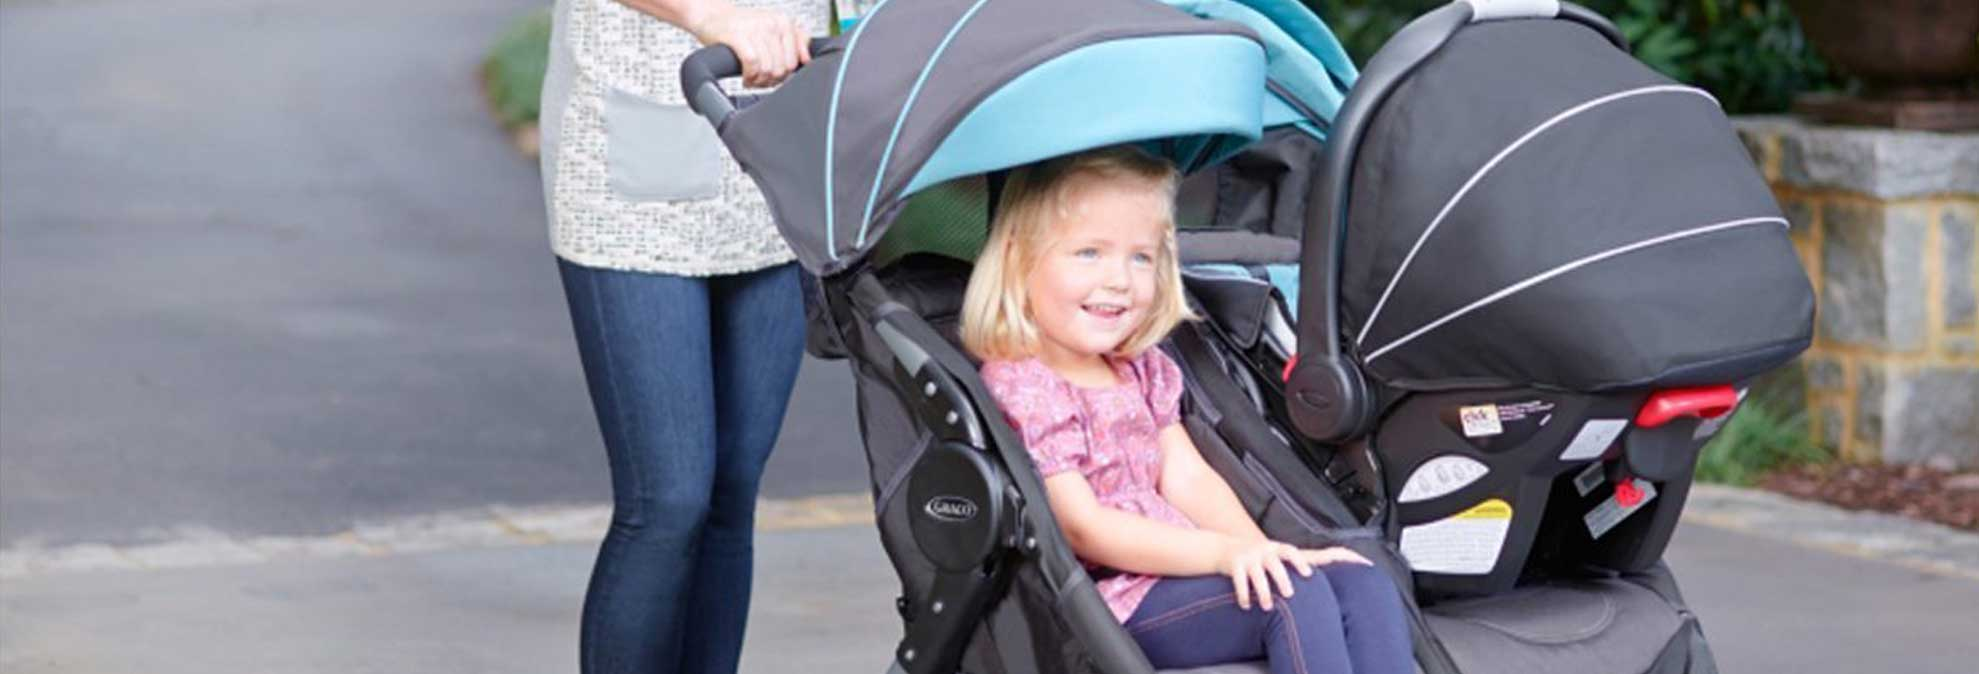 921fd1a1c 3 Questions to Ask Before Buying a Double Stroller - Consumer Reports